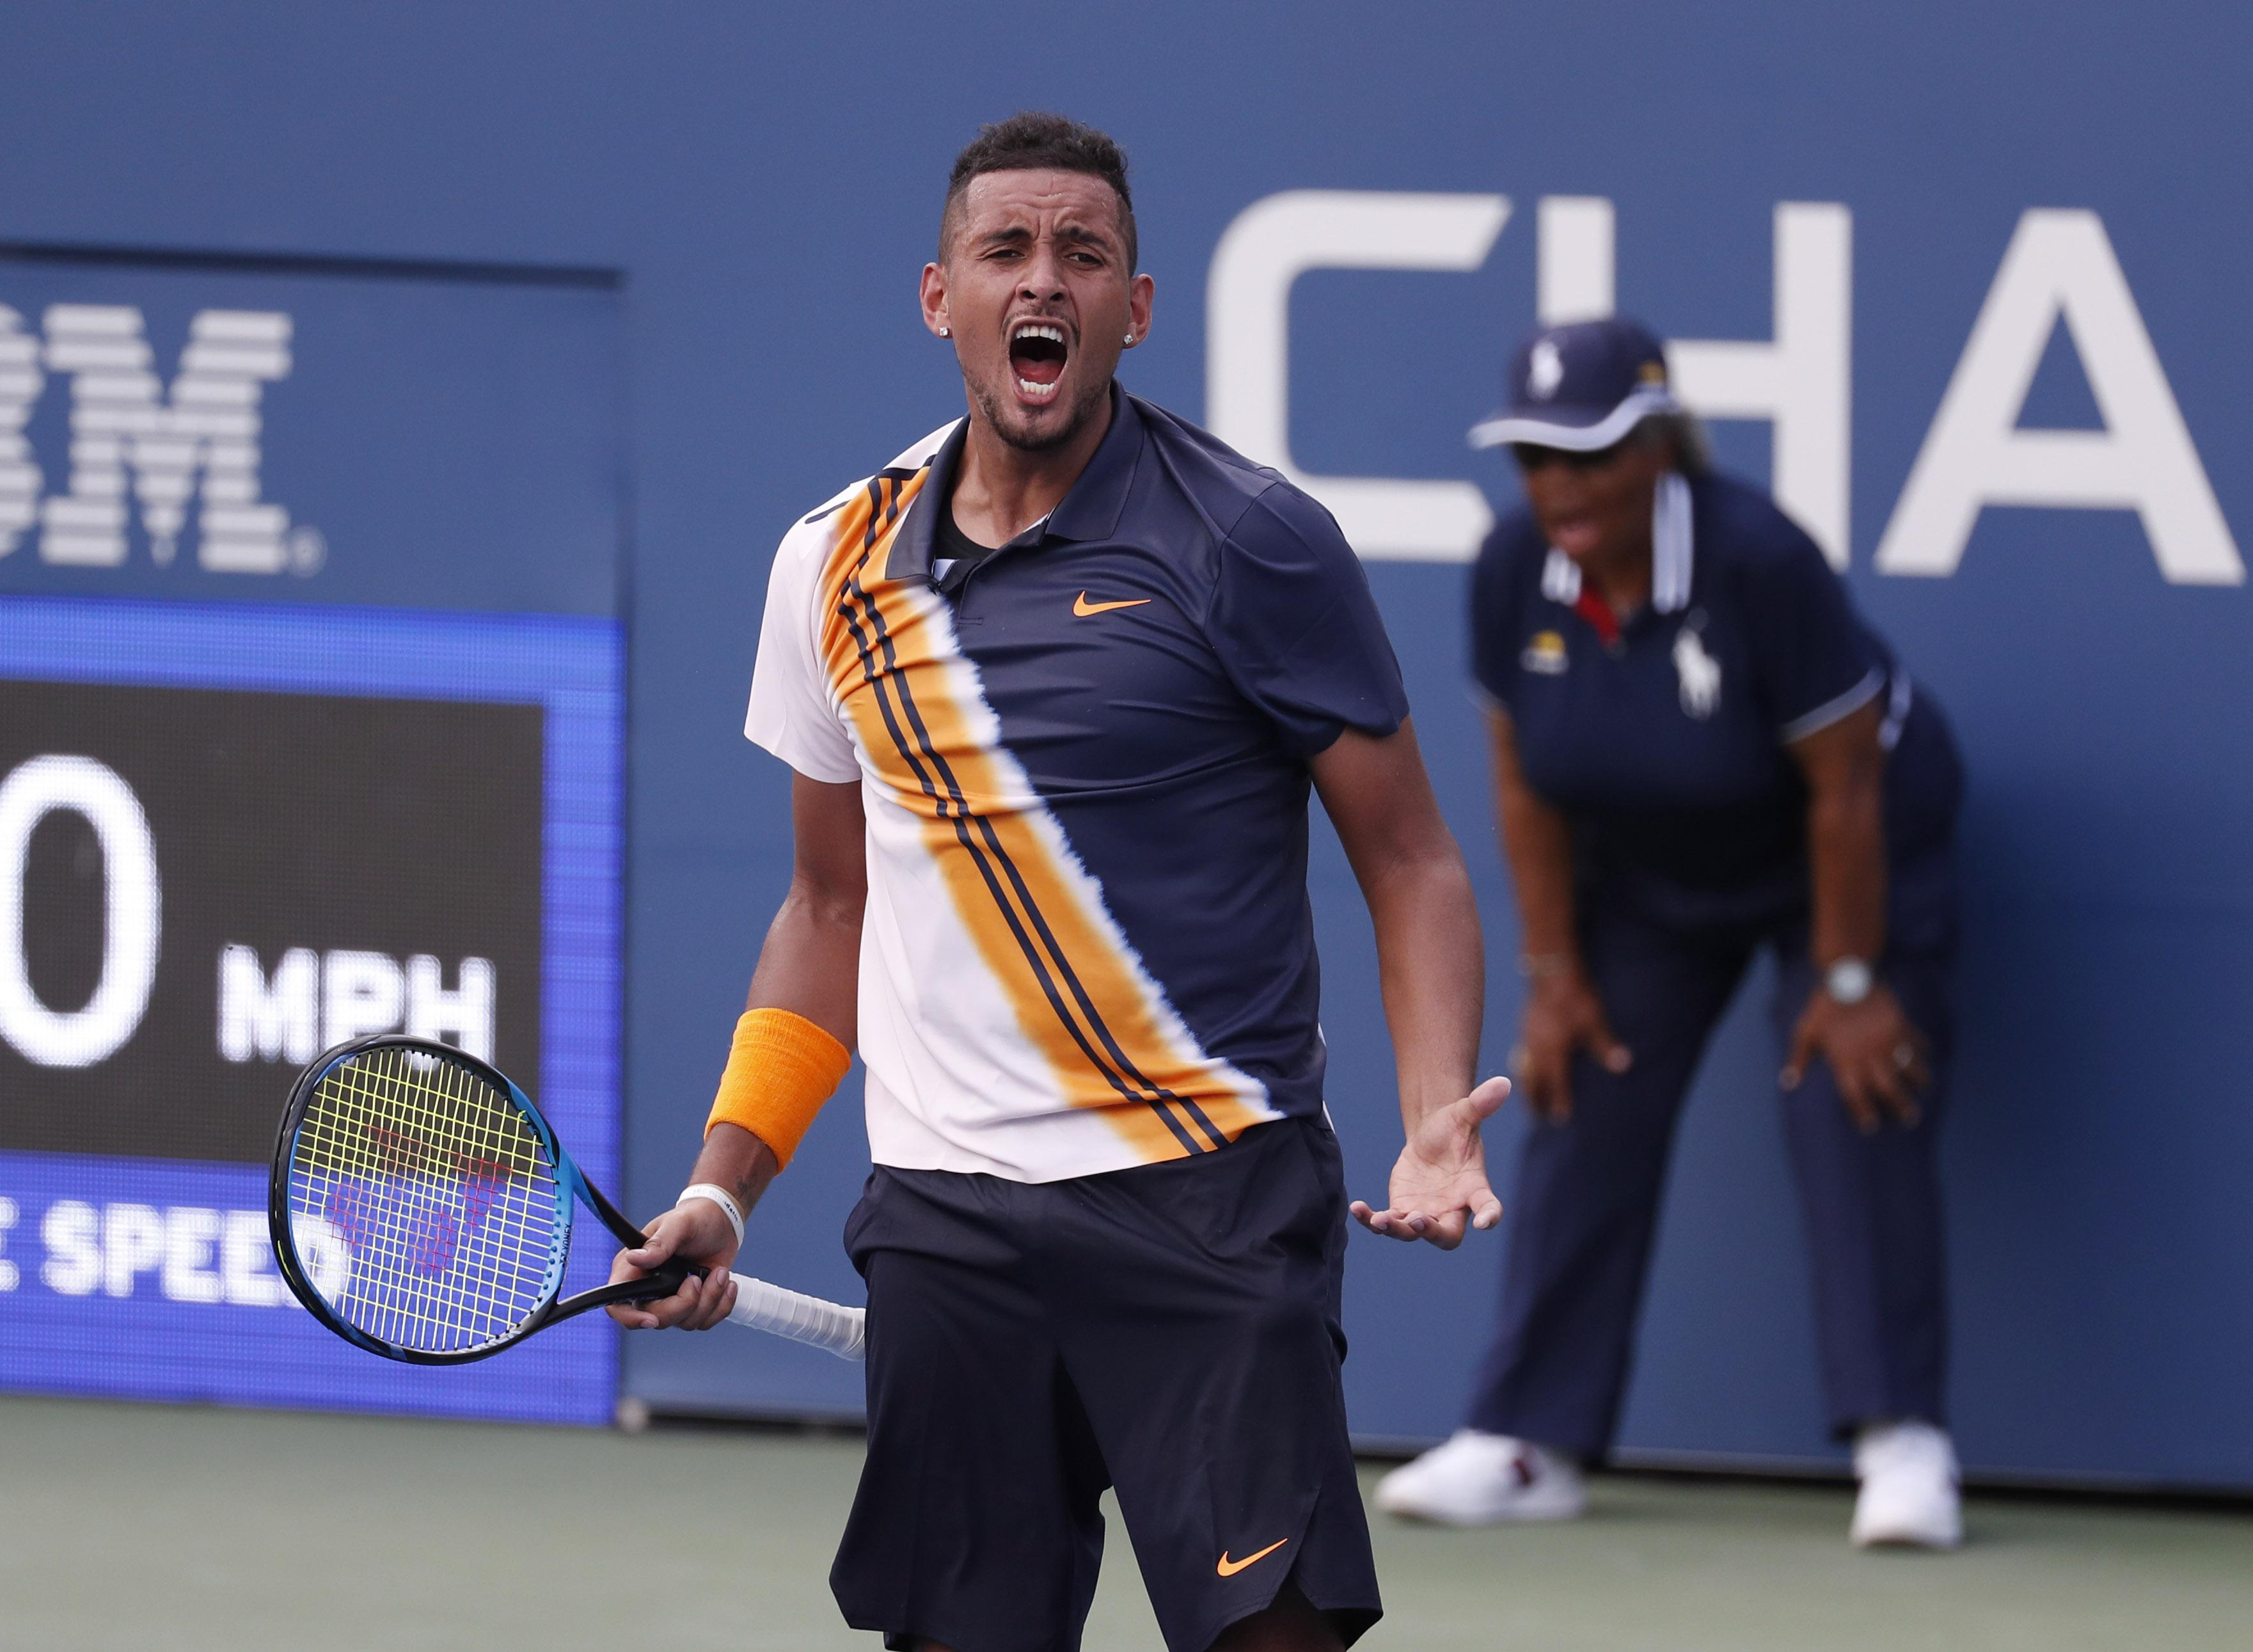 Nick Kyrgios needed a pep-talk from umpire Mohamed Lahyani to inspire him to continue